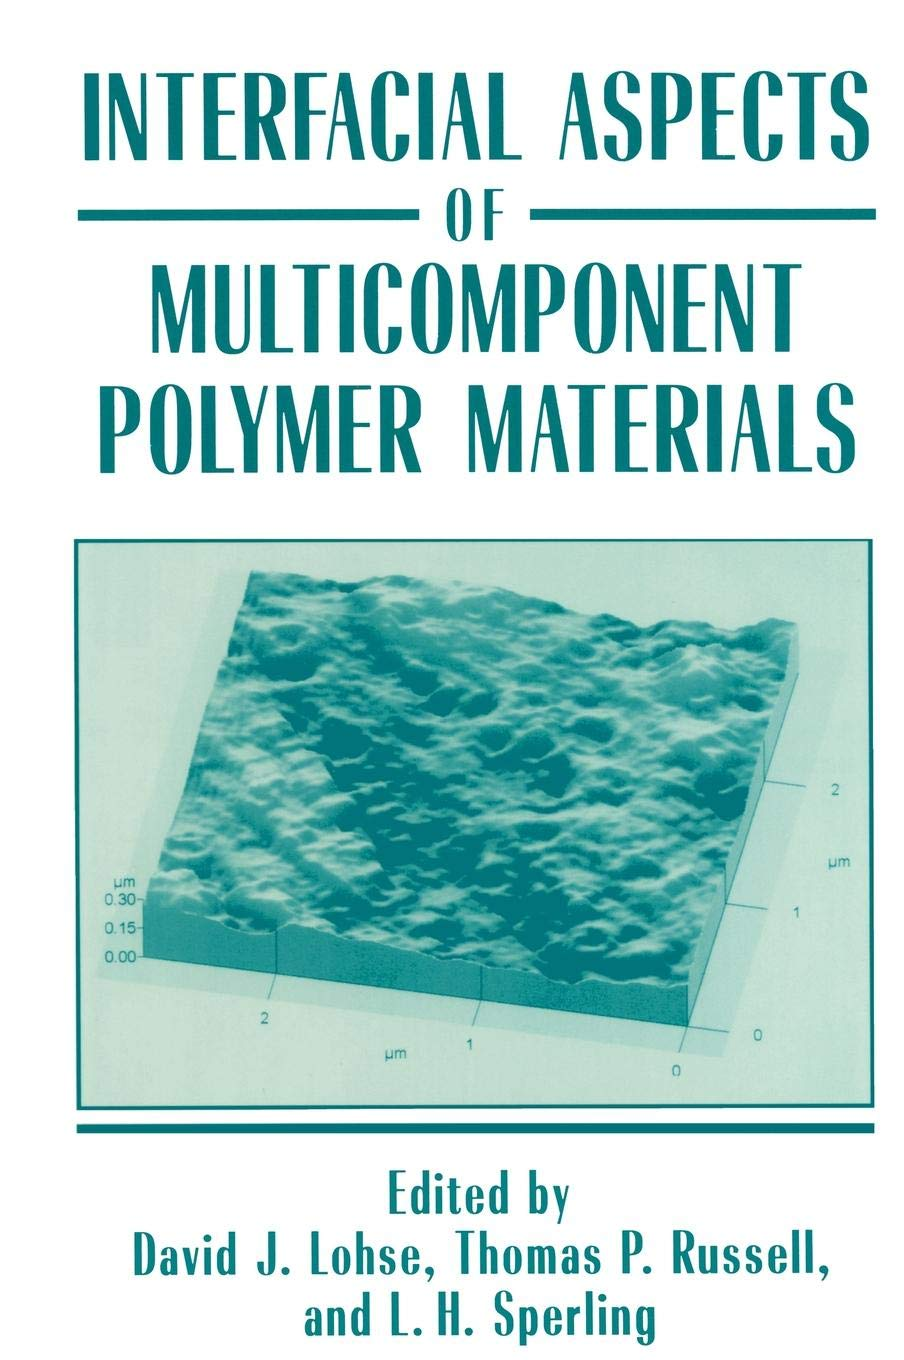 Interfacial Aspects of Multicomponent Polymer Materials (The Language of Science) by Springer